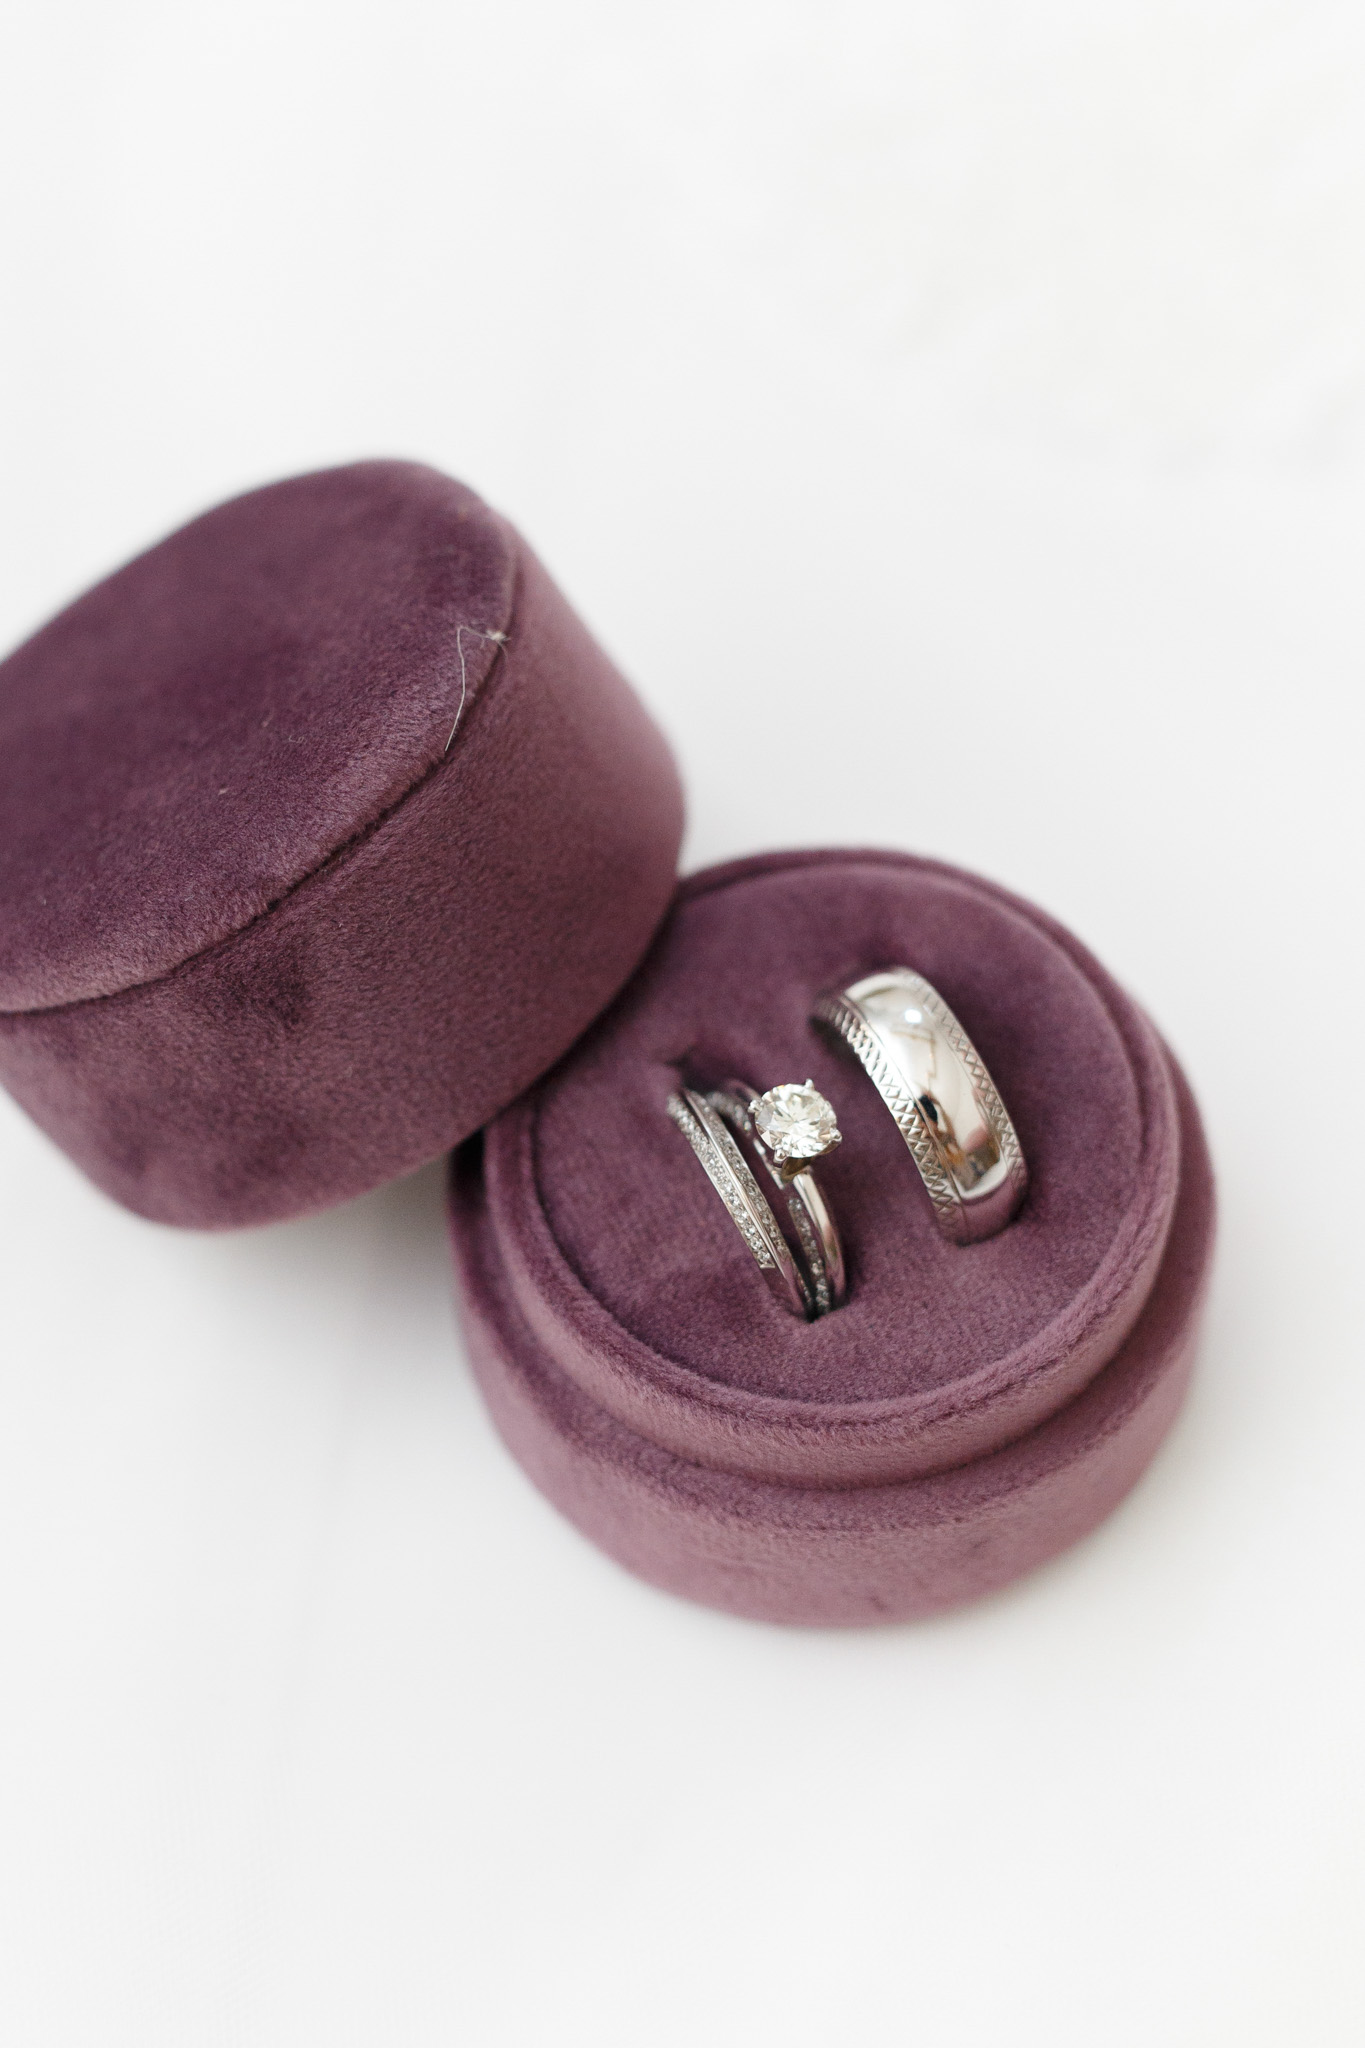 ryan thomas wedding rings in purple round box